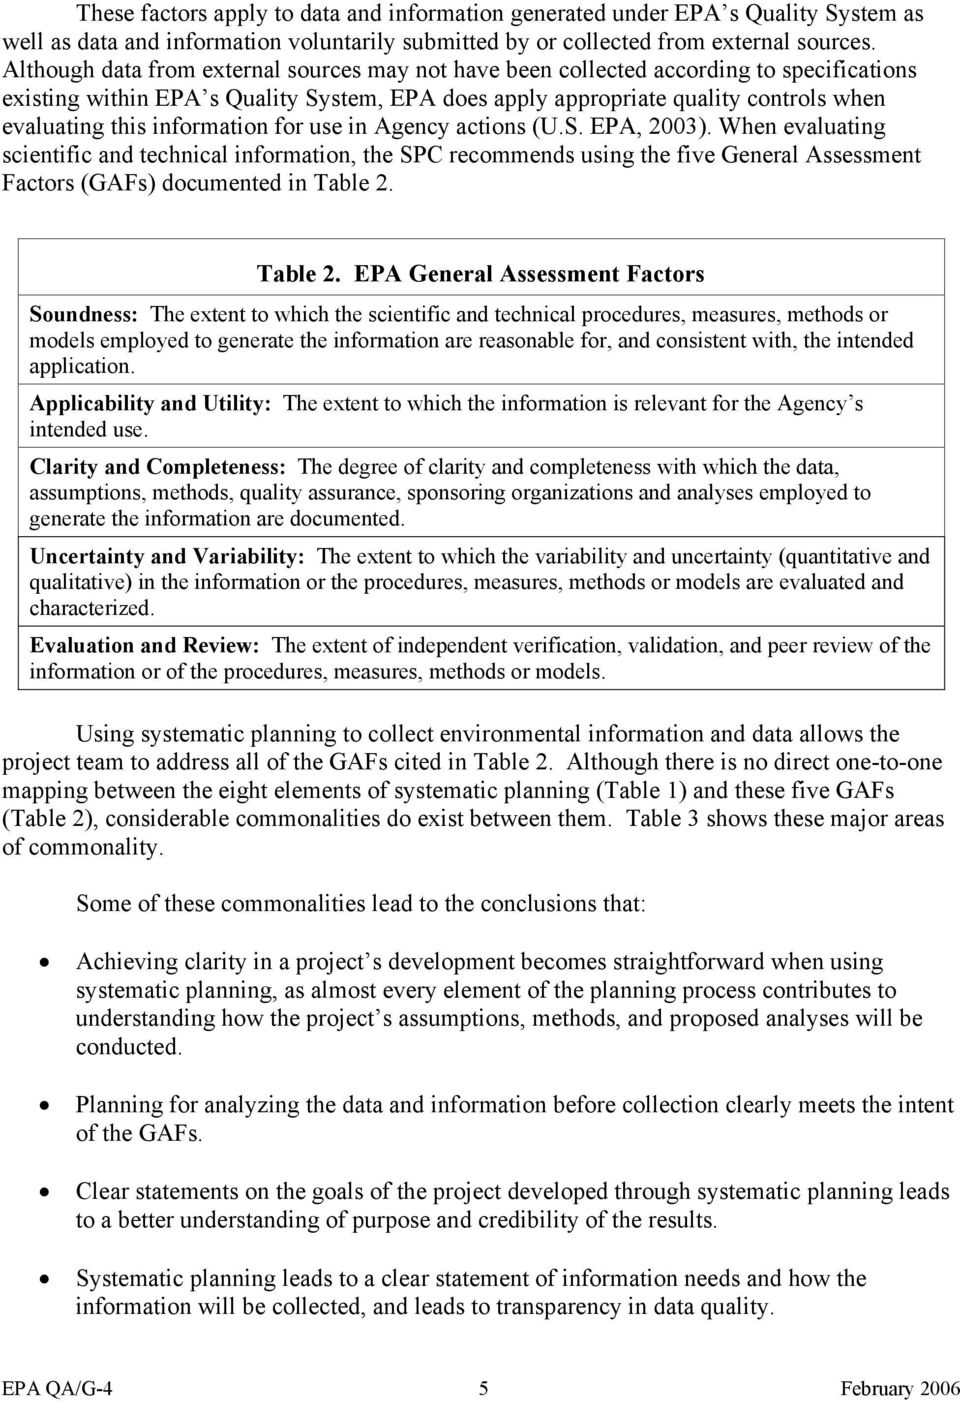 information for use in Agency actions (U.S. EPA, 2003). When evaluating scientific and technical information, the SPC recommends using the five General Assessment Factors (GAFs) documented in Table 2.